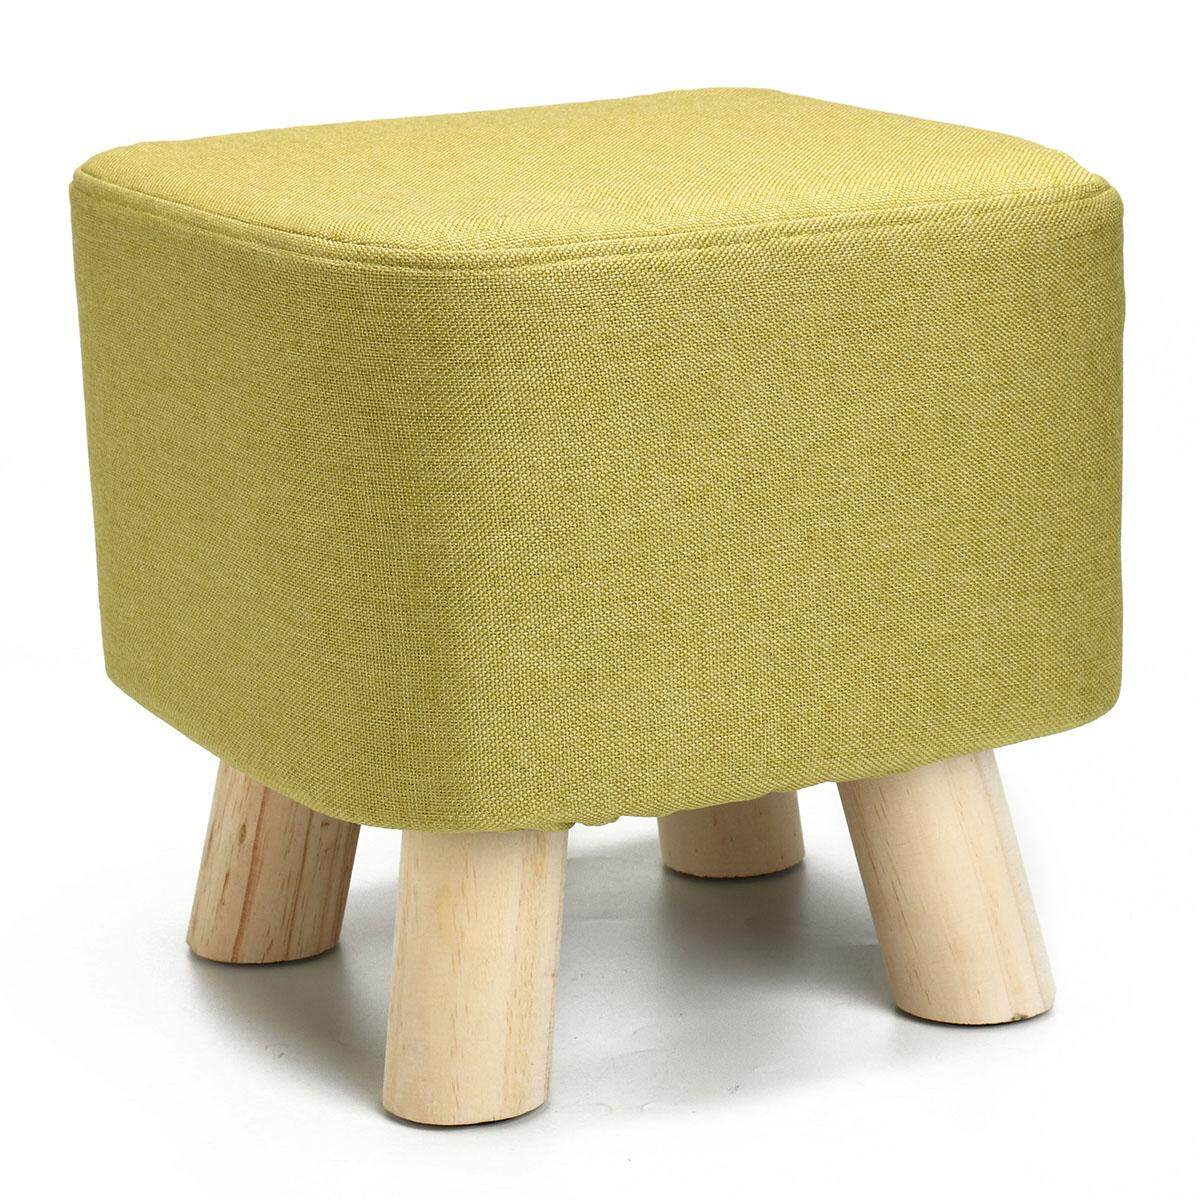 Living Room Pouffe Chairs Sofa Ottoman FootStool Bedroom Chairs Hallway Chairs - intl